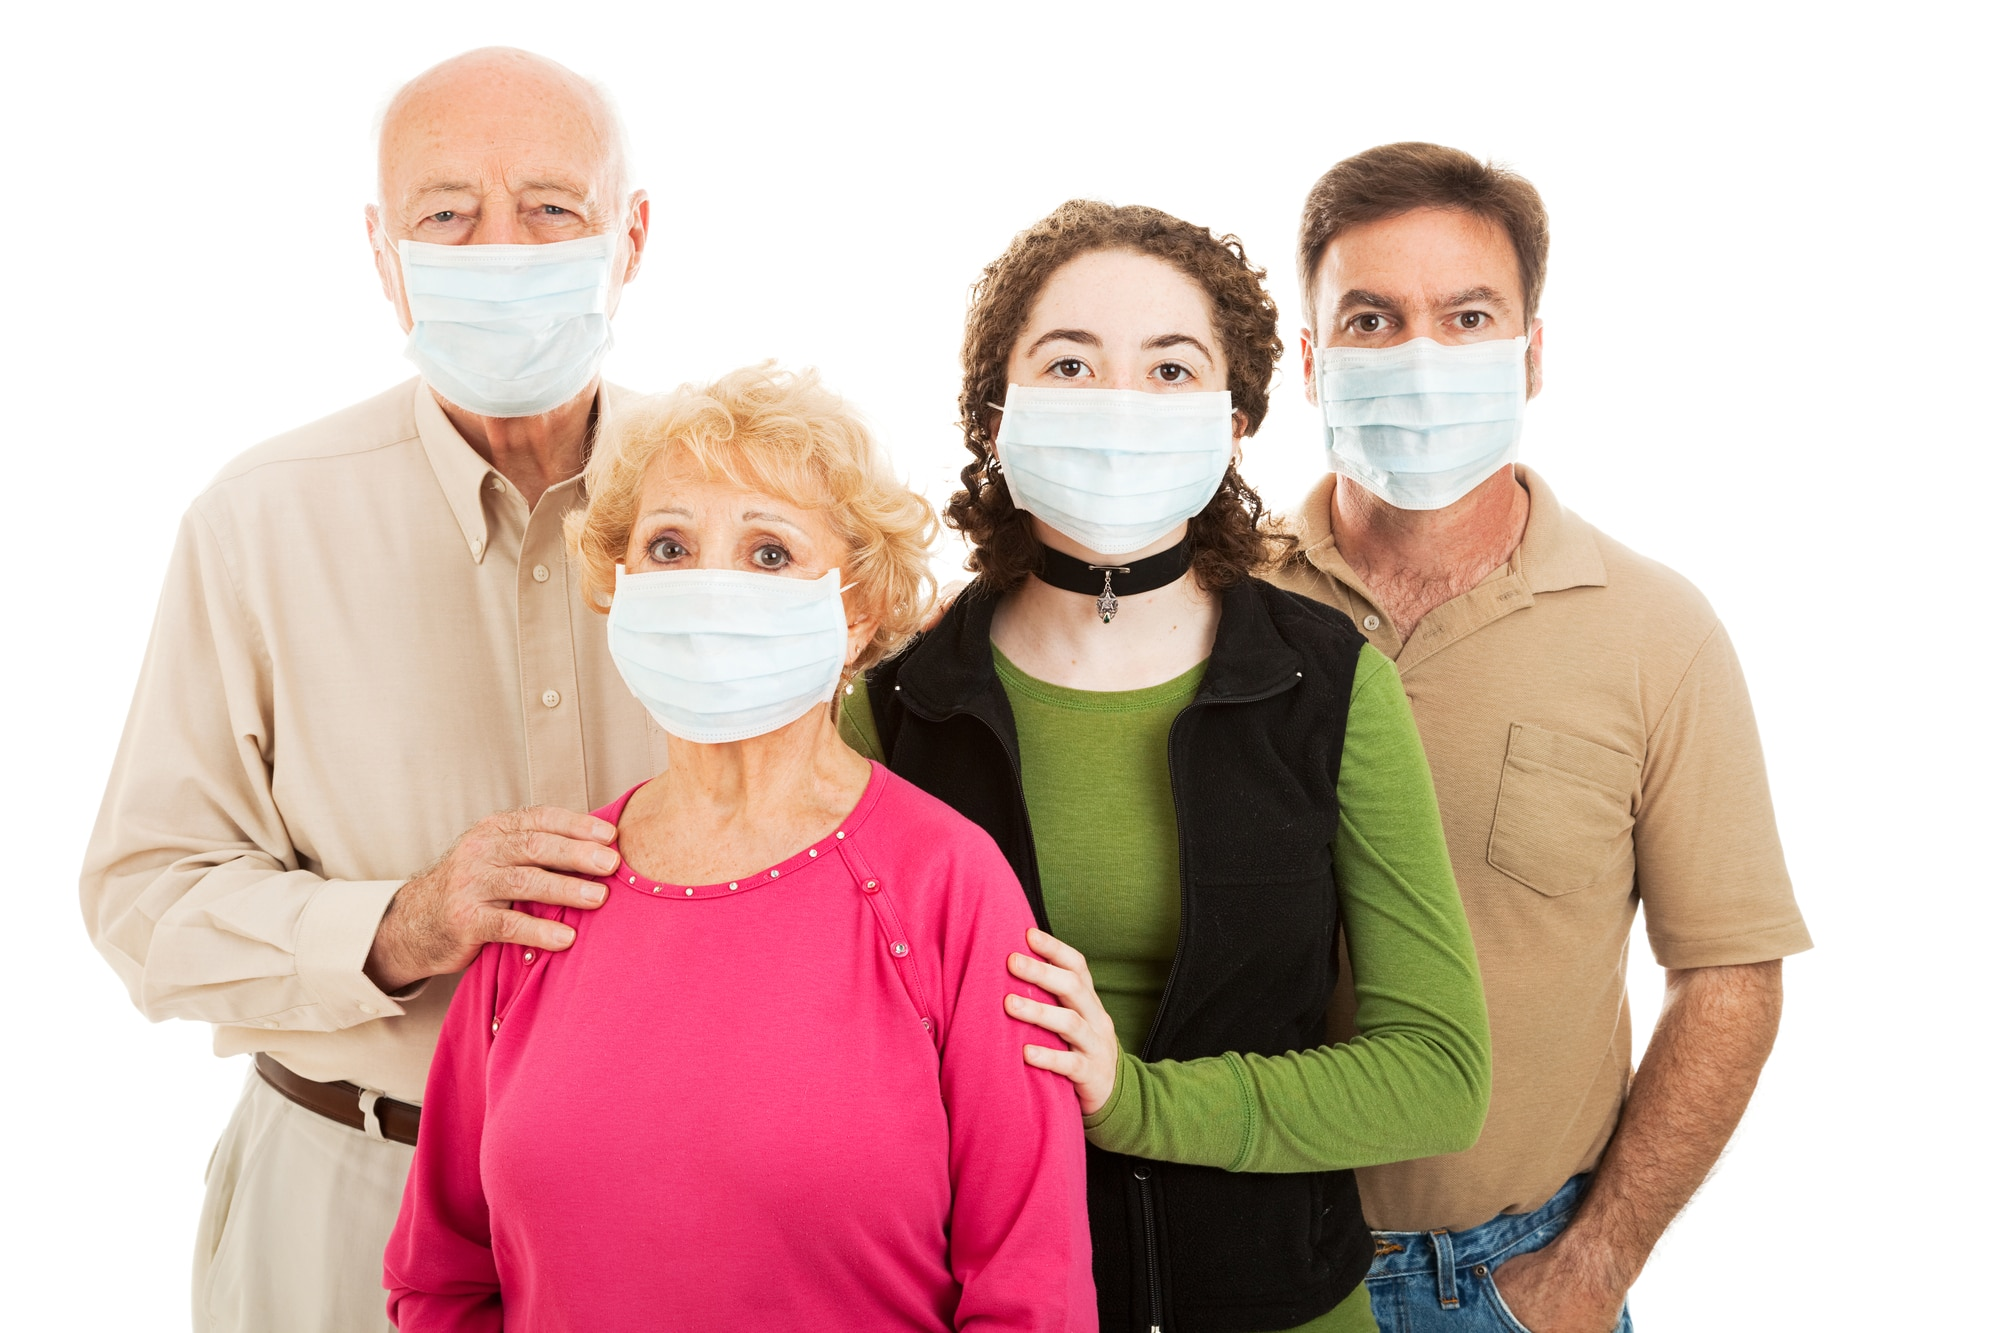 Family - elderly parents, their adult son, and teen granddaughter - wearing surgical masks to protect from an epidemic.